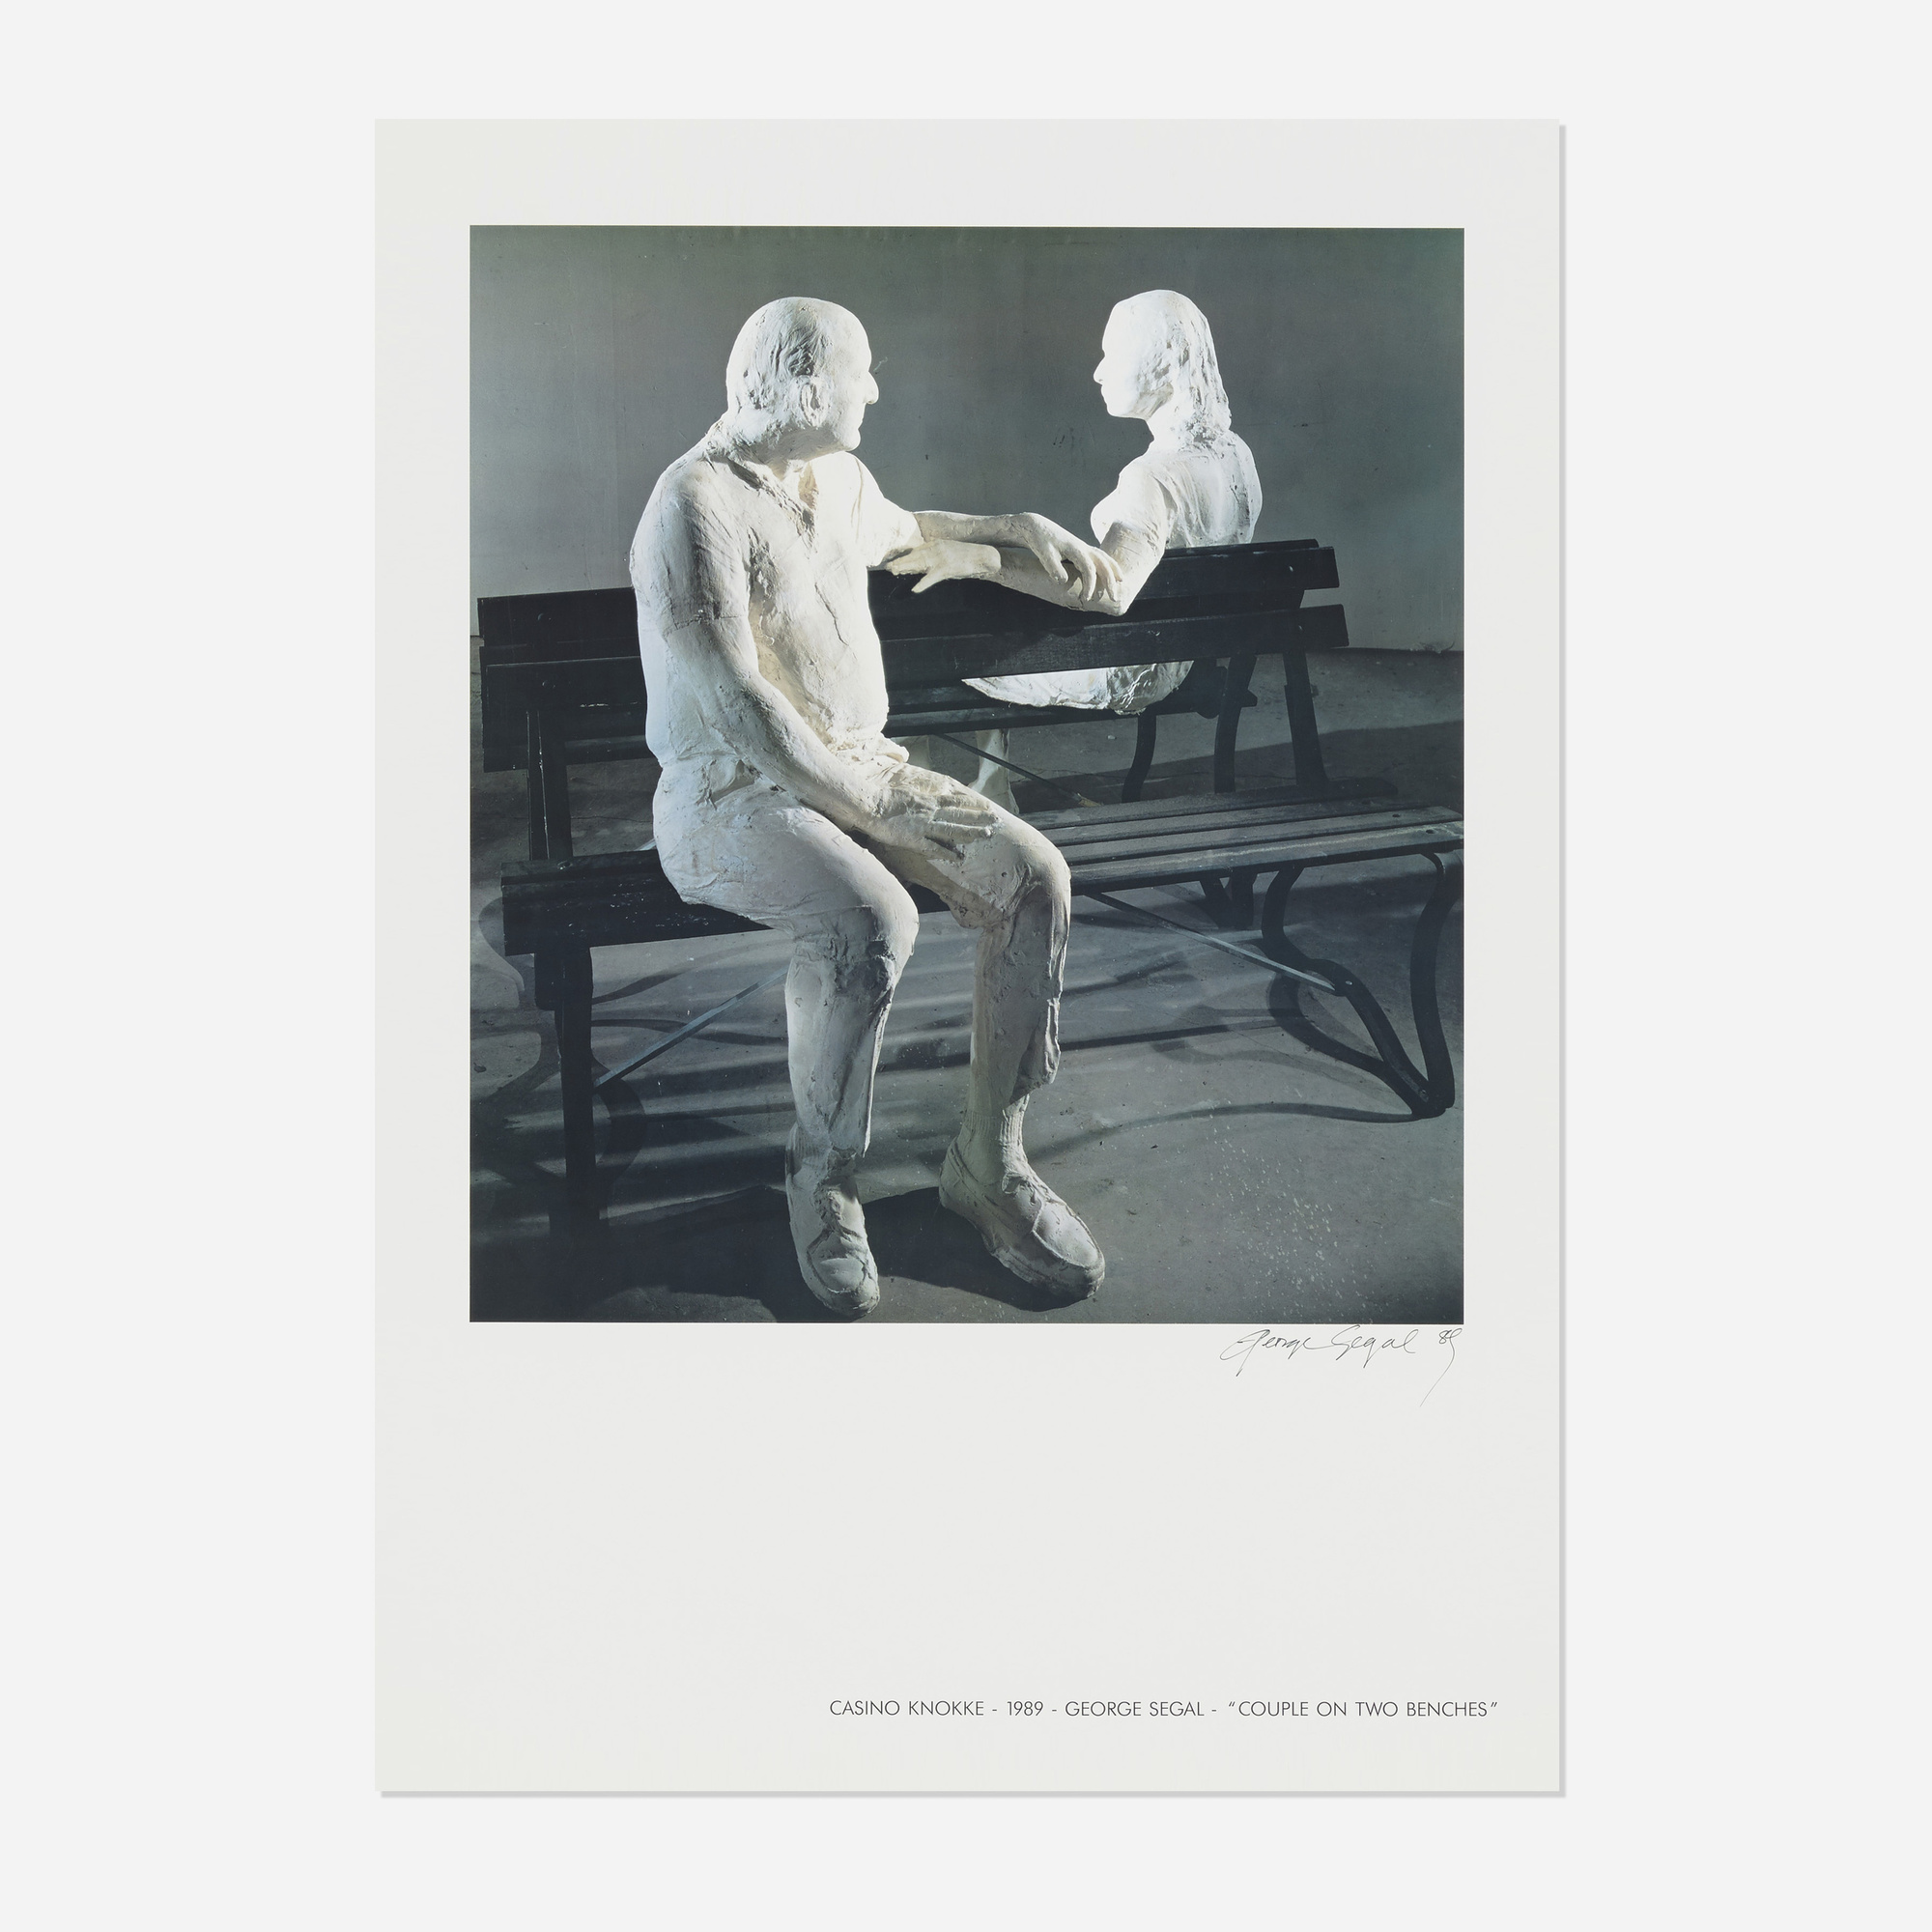 164: After George Segal / Untitled (poster for residences at the Knokke Casino, Belgium) (1 of 1)